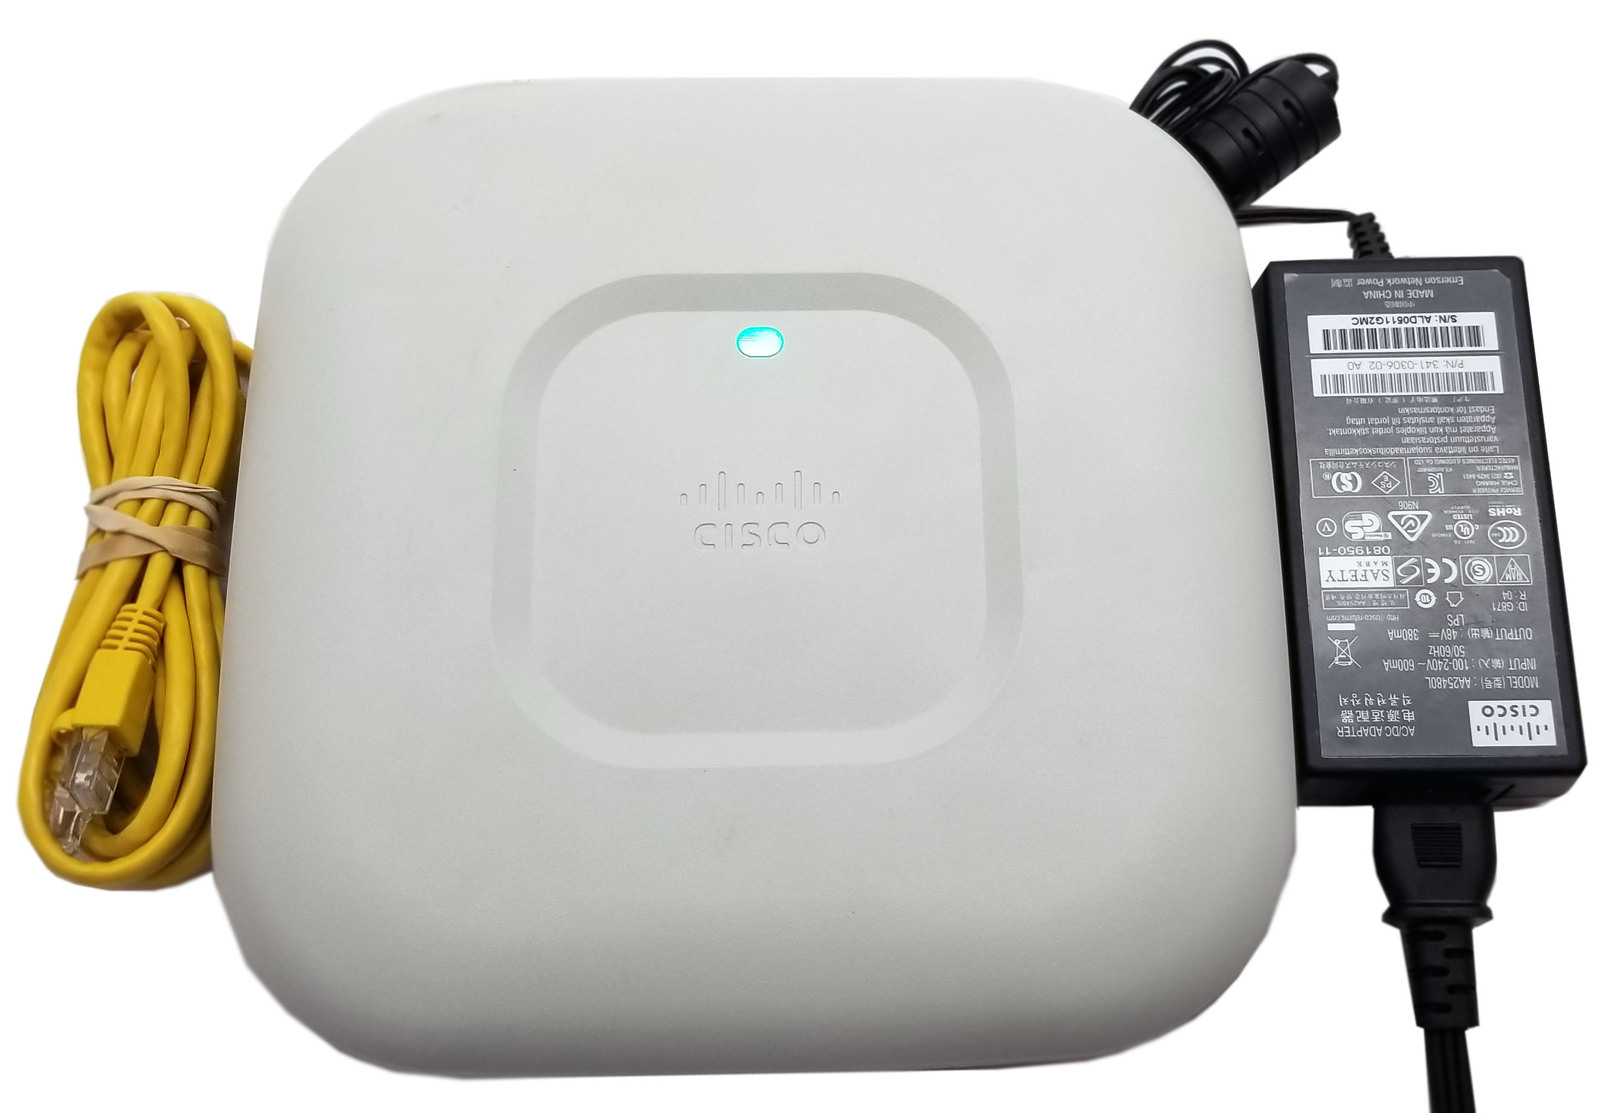 Cisco air cap 1702i b 001